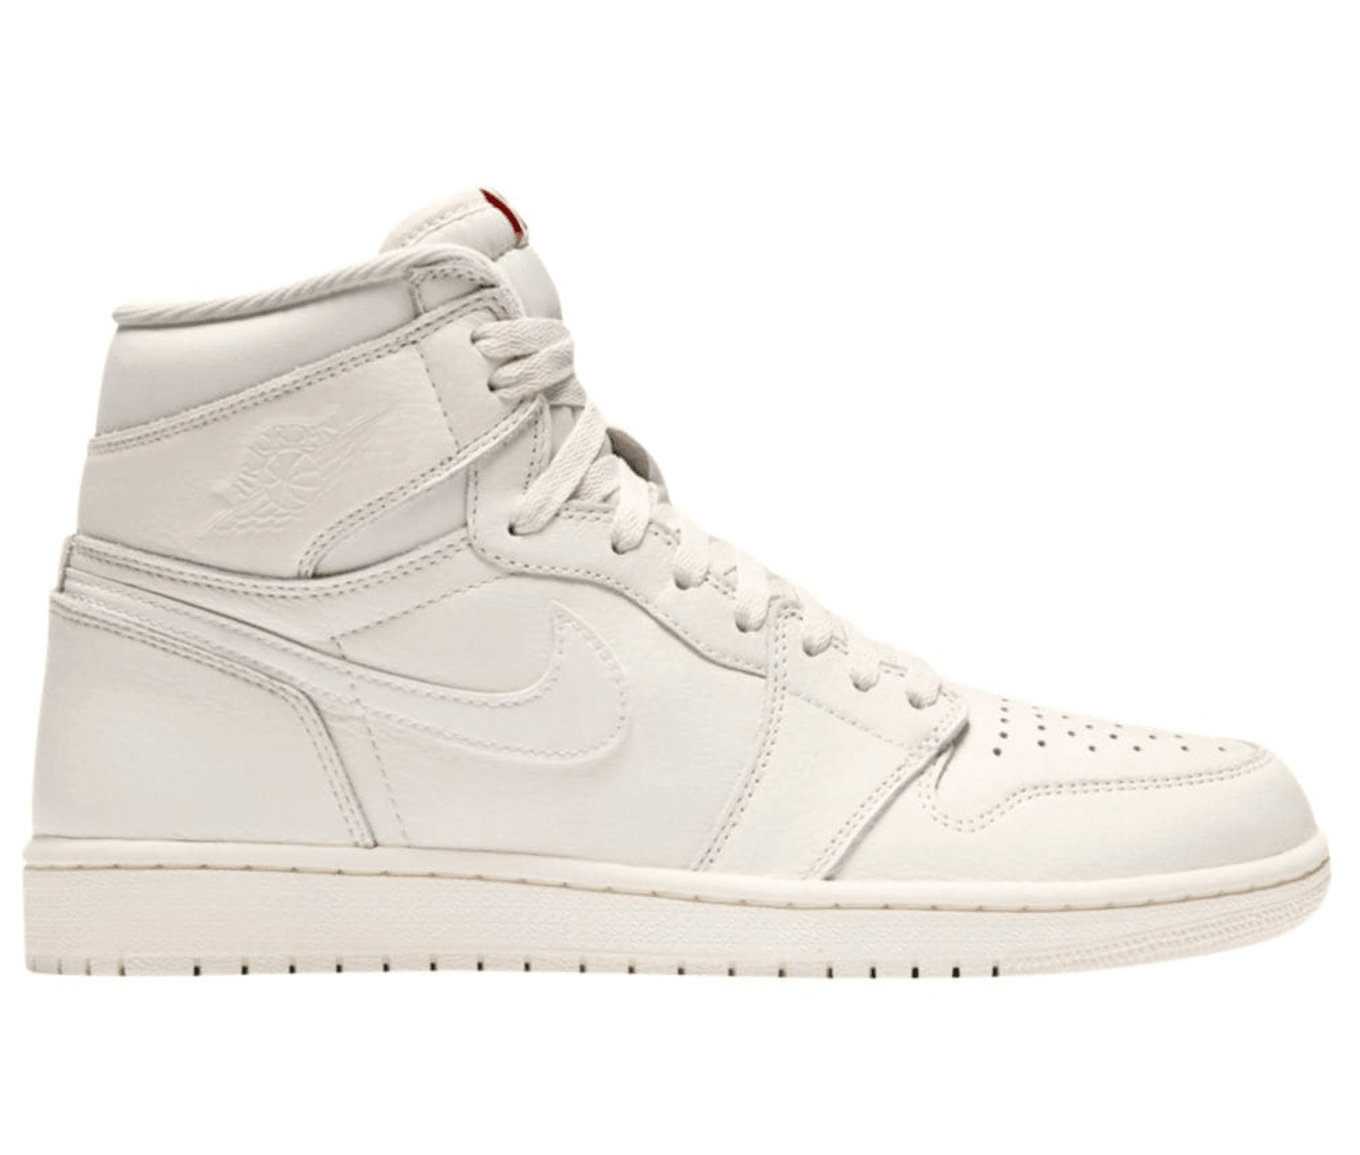 ff621064da30 Great Buys  The 20 Best Sneakers for the Money